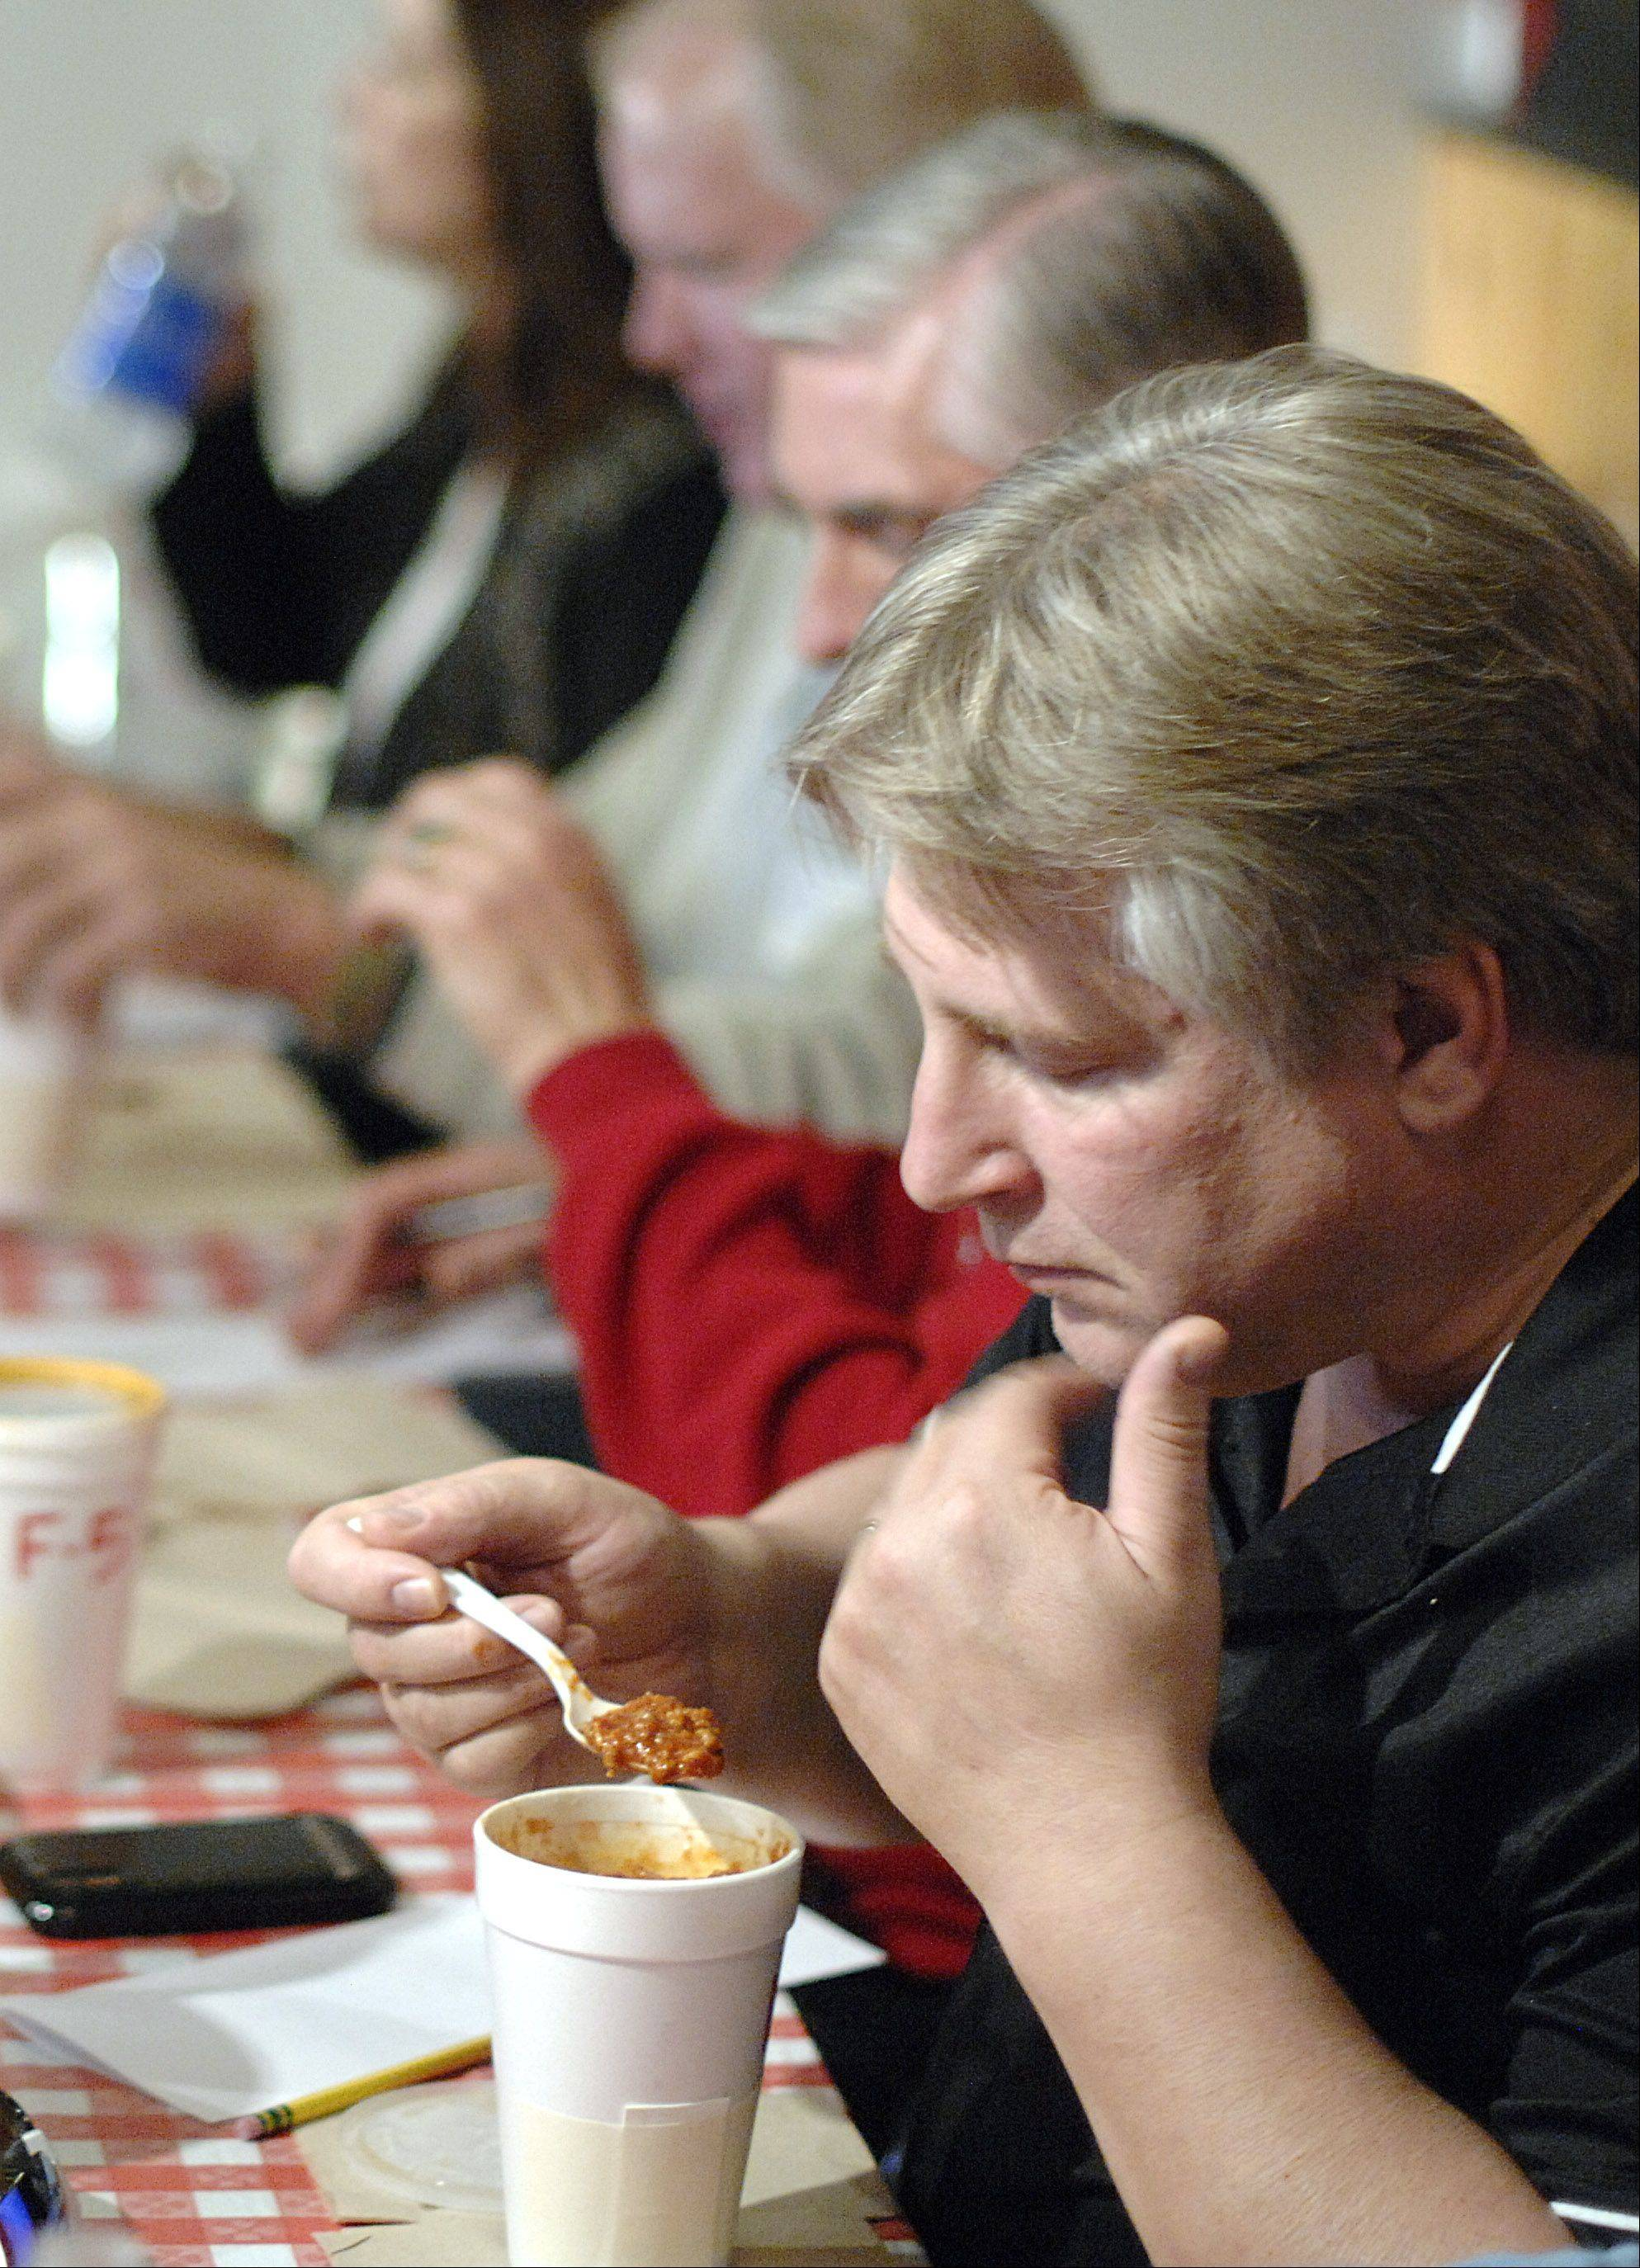 Scott Henry of Wheaton enjoys the aroma of a cup of chili before judging it at Kuipers Family Farm�s third annual Chili Cook-Off in Maple Park on Saturday. All proceeds of the competition go to Conley Outreach Community Services in Elburn.